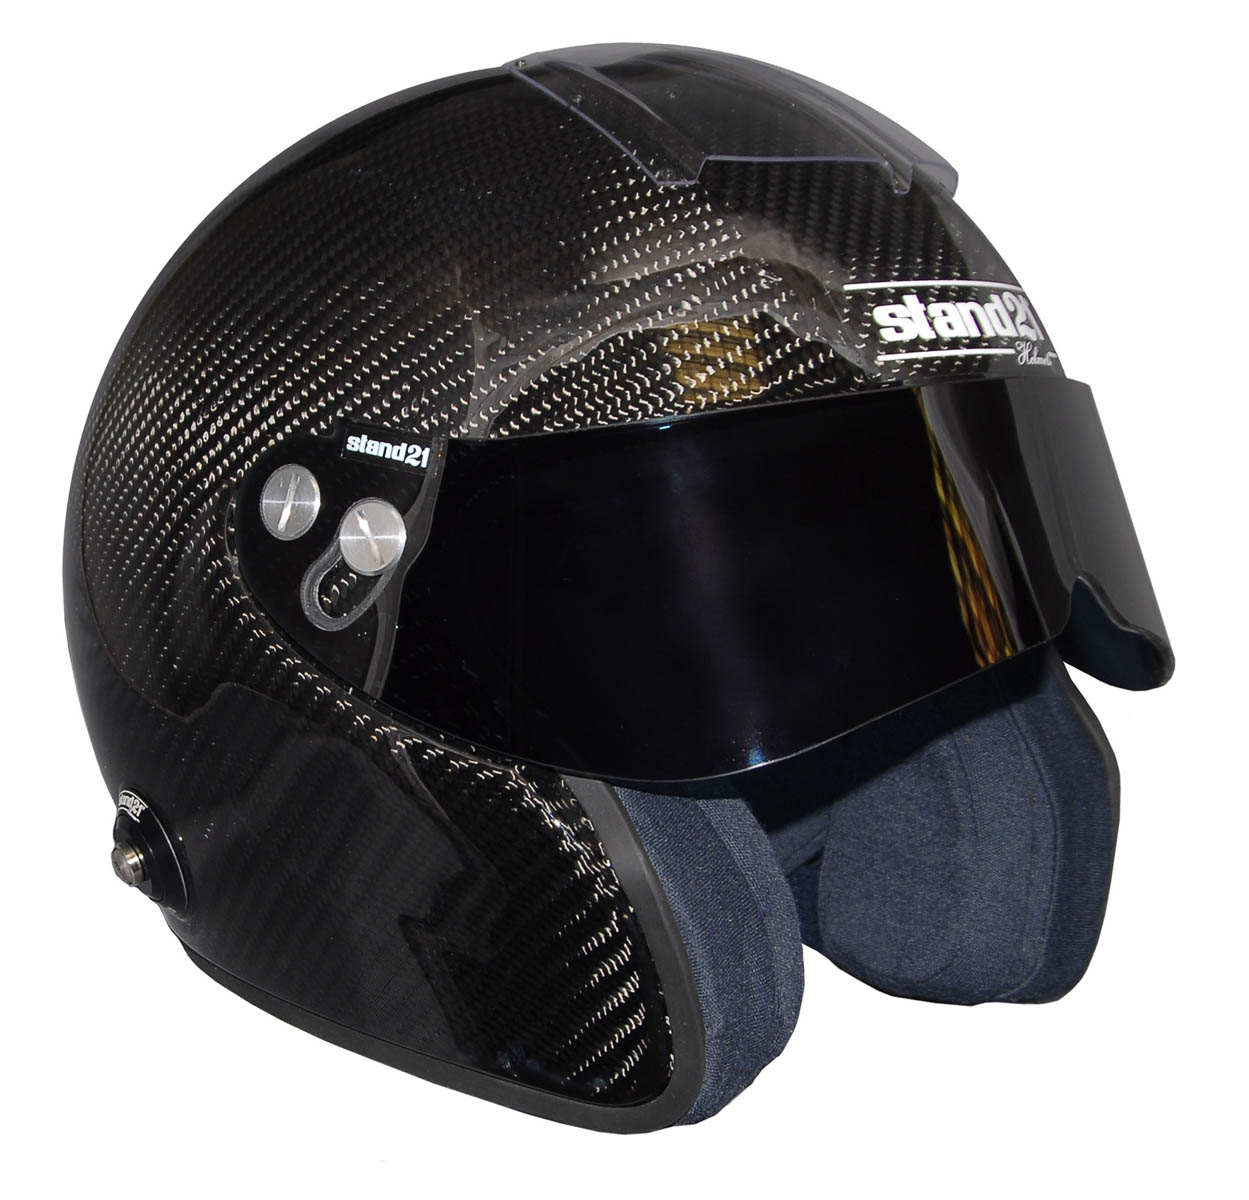 Stock IVOS Open Face Double Duty helmet with visor